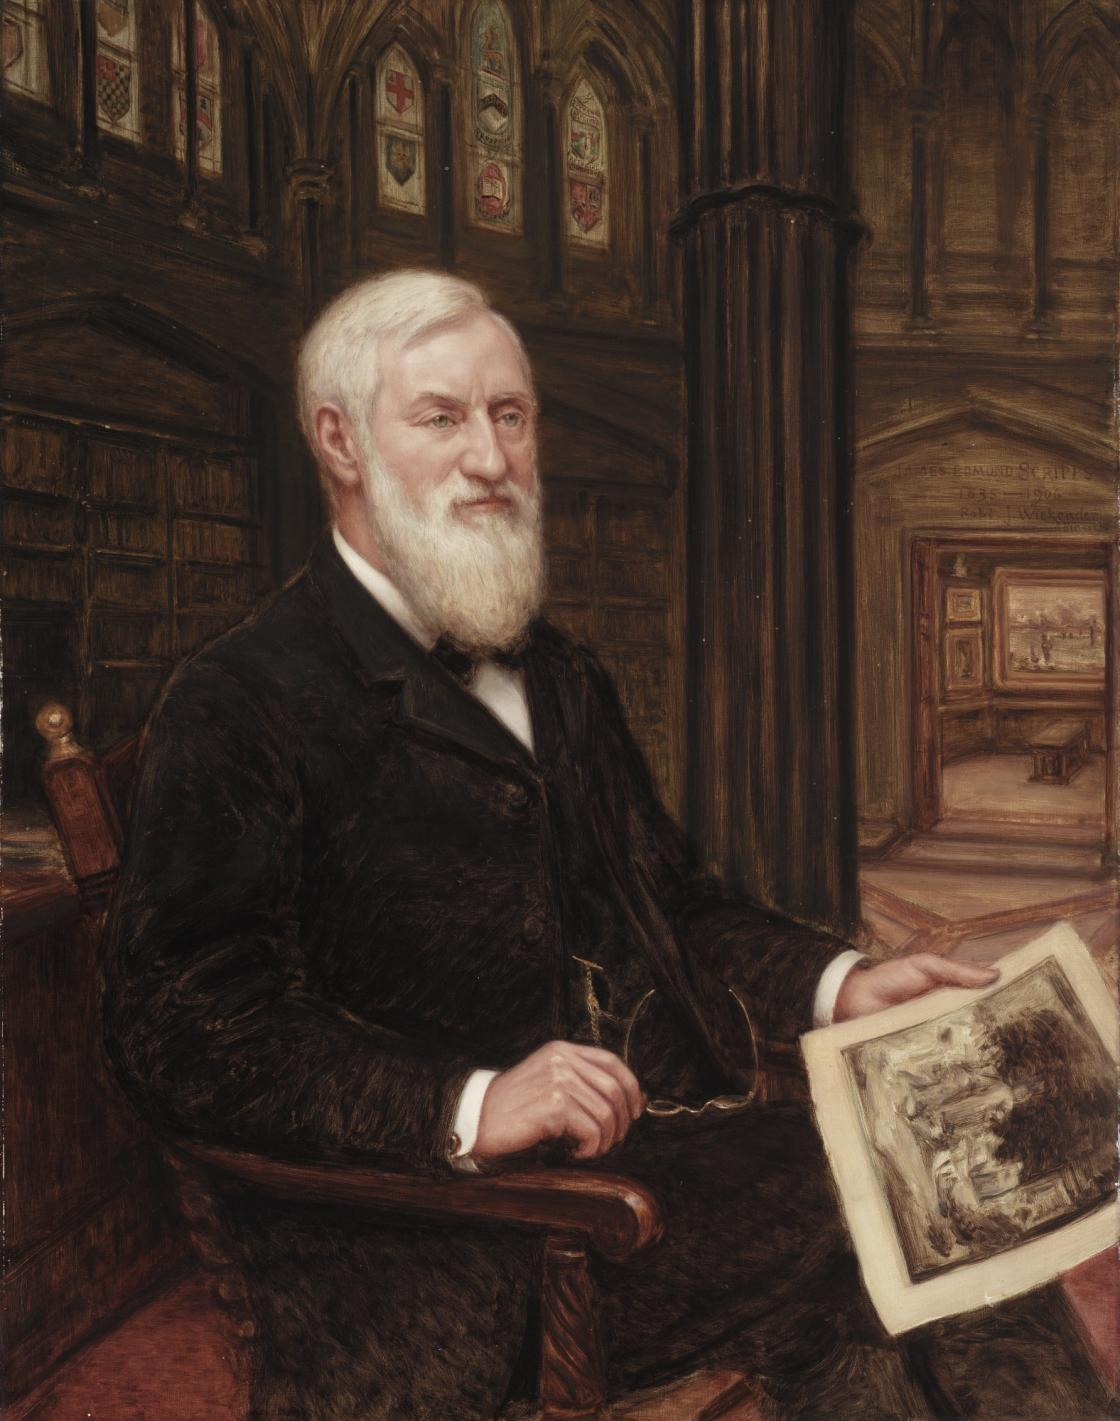 Robert J. Wickenden, James Edmund Scripps, 1907, oil on canvas (58 x 36 inches). Detroit Institute of Arts, Gift of the Estate of James E. Scripps, 07.2. Photography Courtesy The Detroit Institute of Arts.